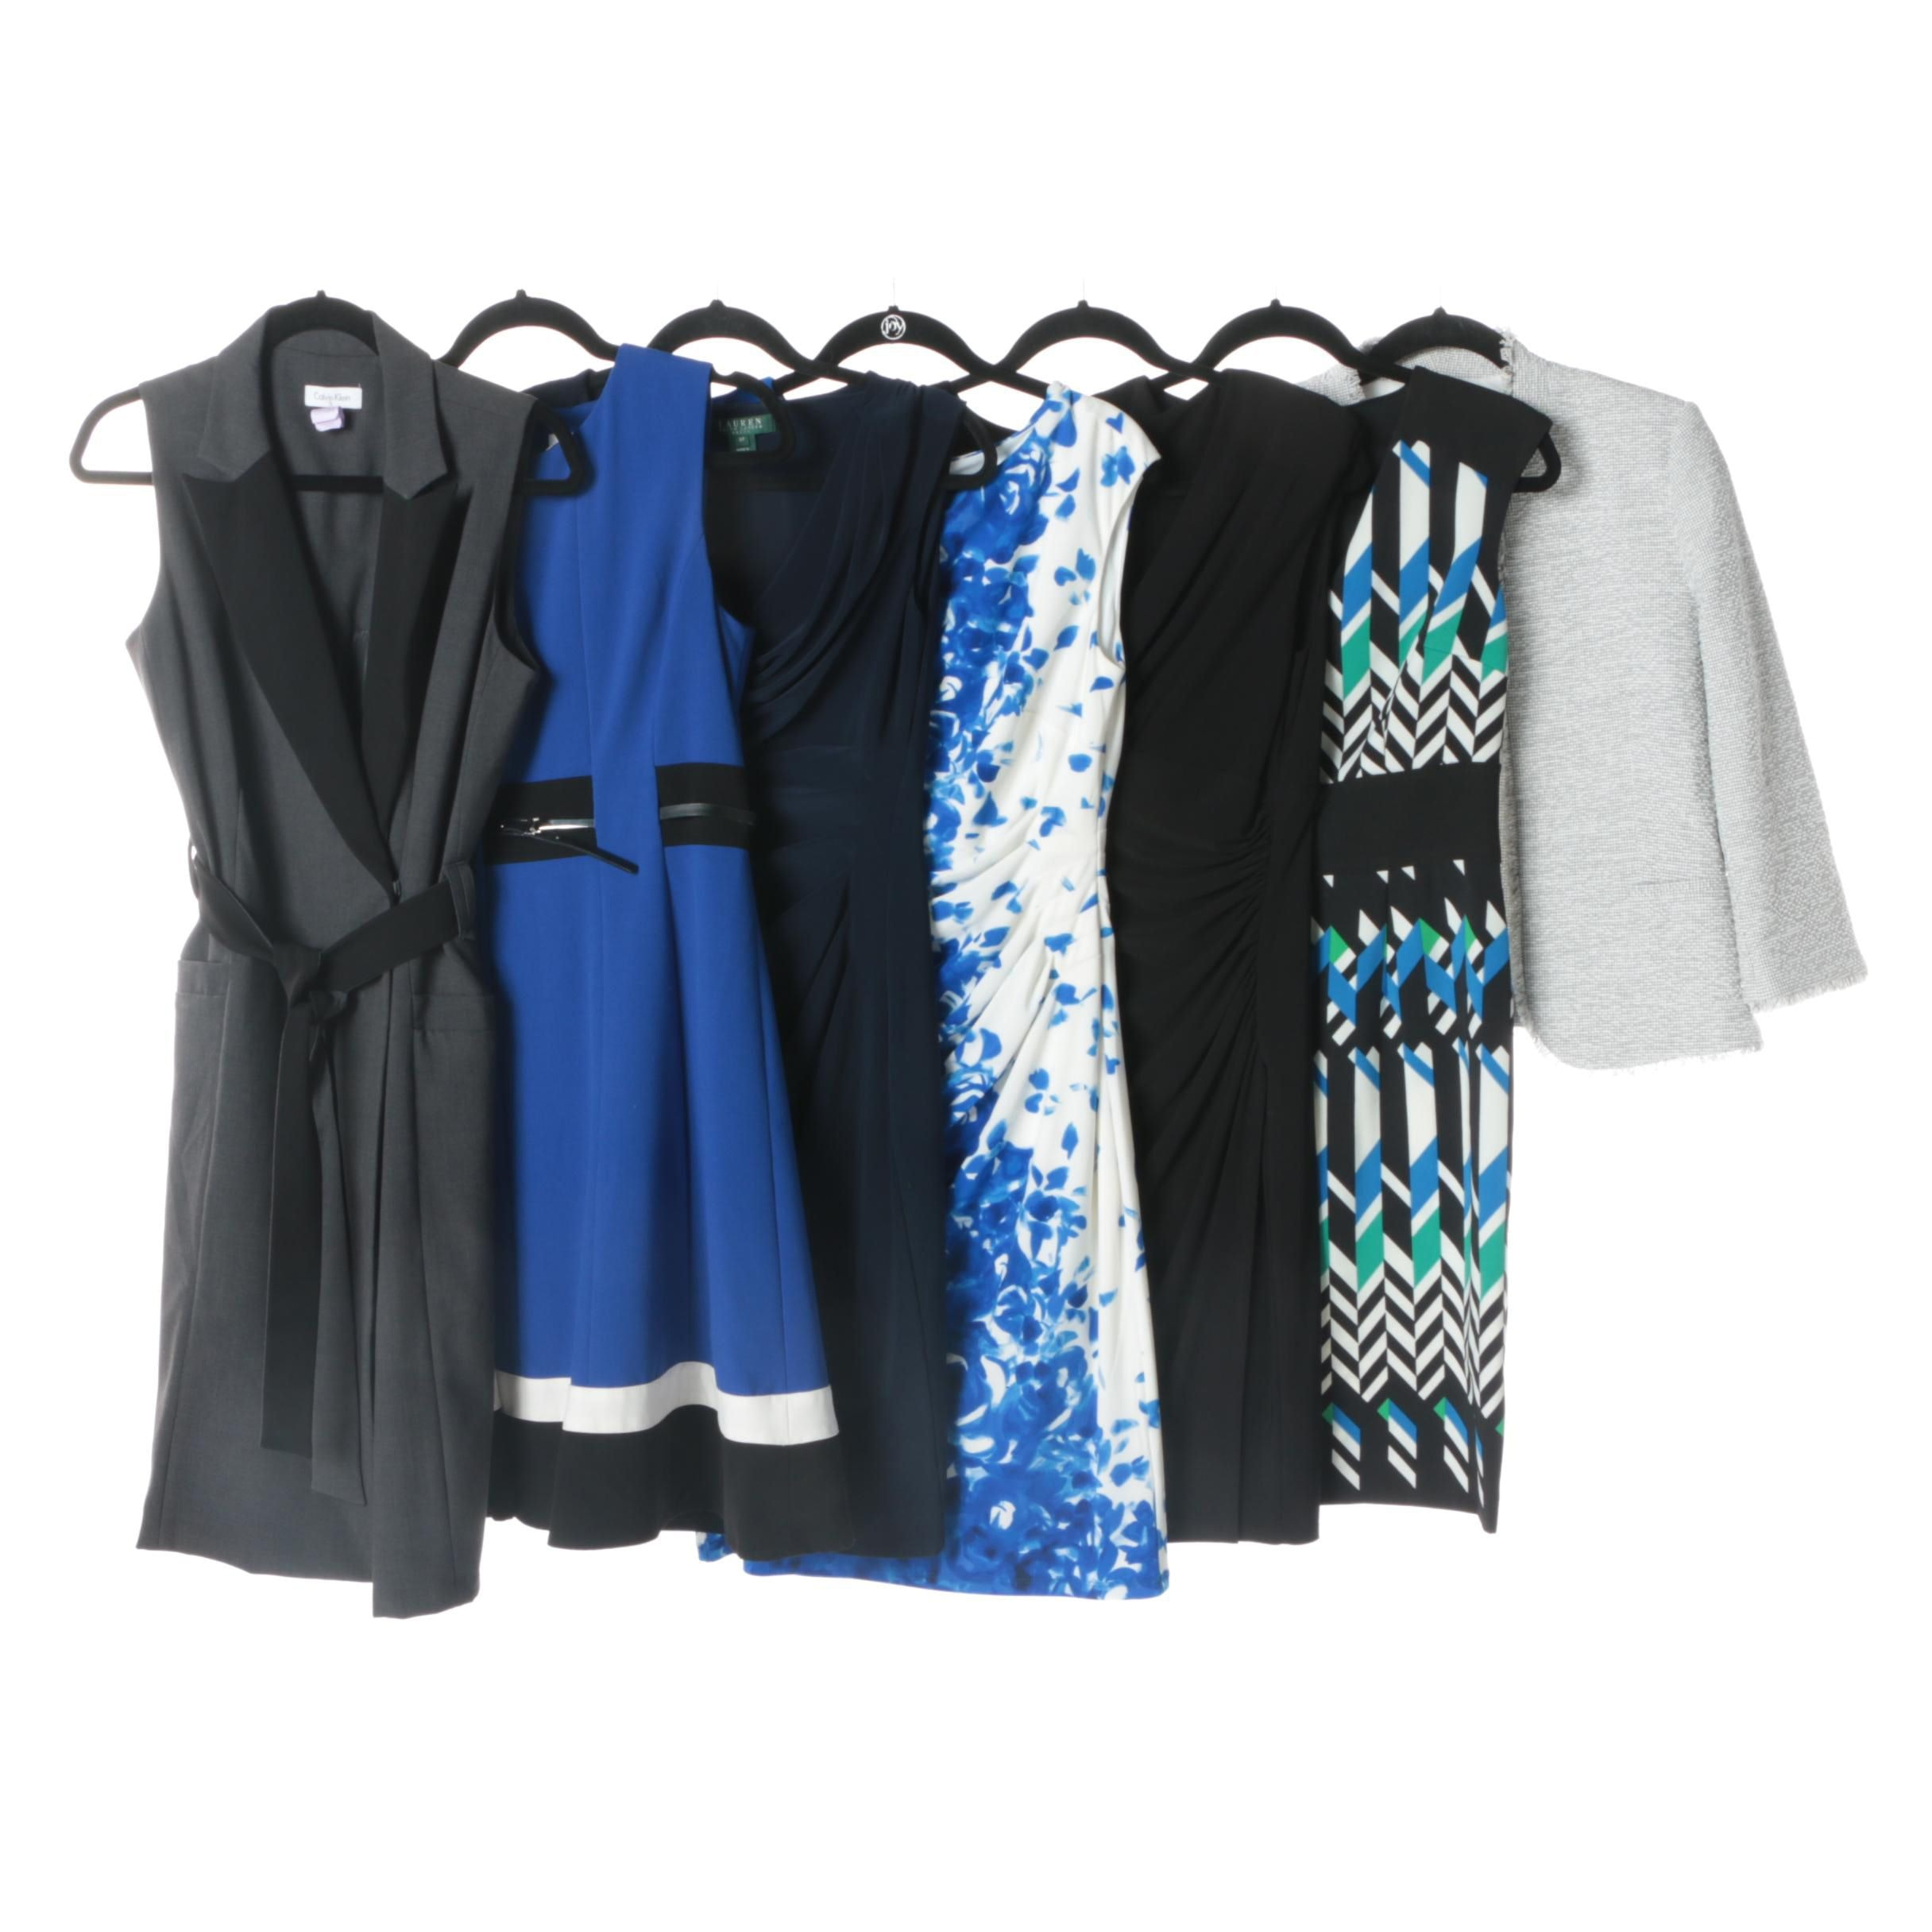 Contemporary Dresses and Jacket Including Calvin Klein and Lauren Ralph Lauren